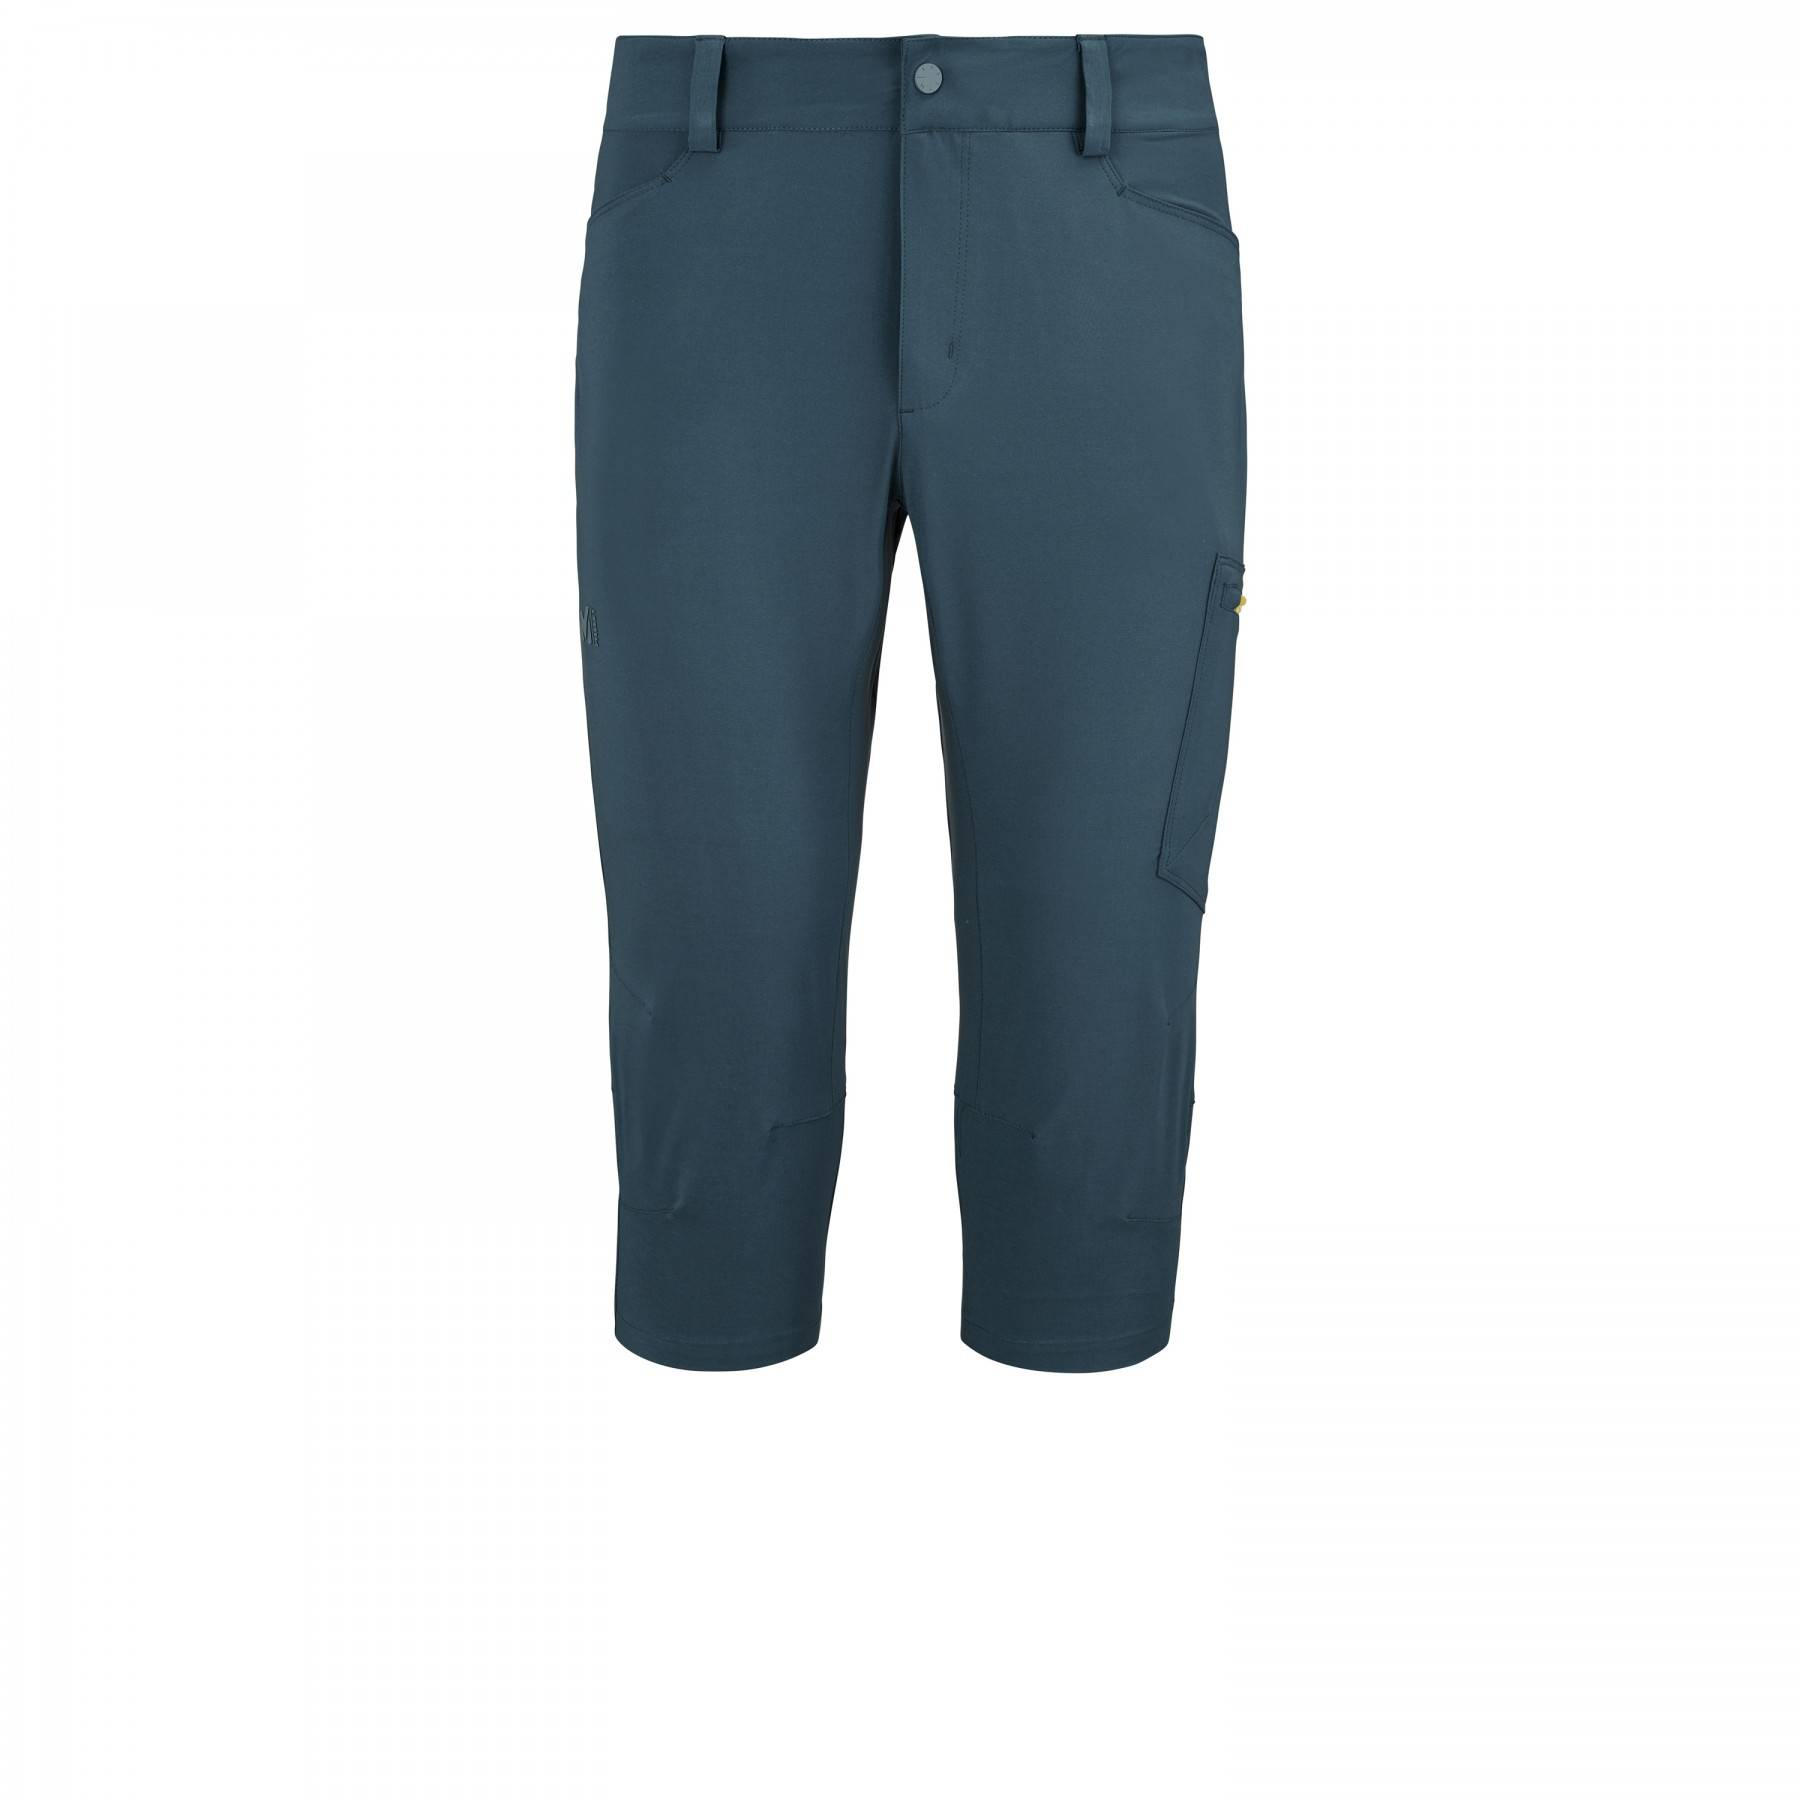 millet Pantalon Millet Wanaka Stretch 3/4 Orion Blue/wild Lime Homme